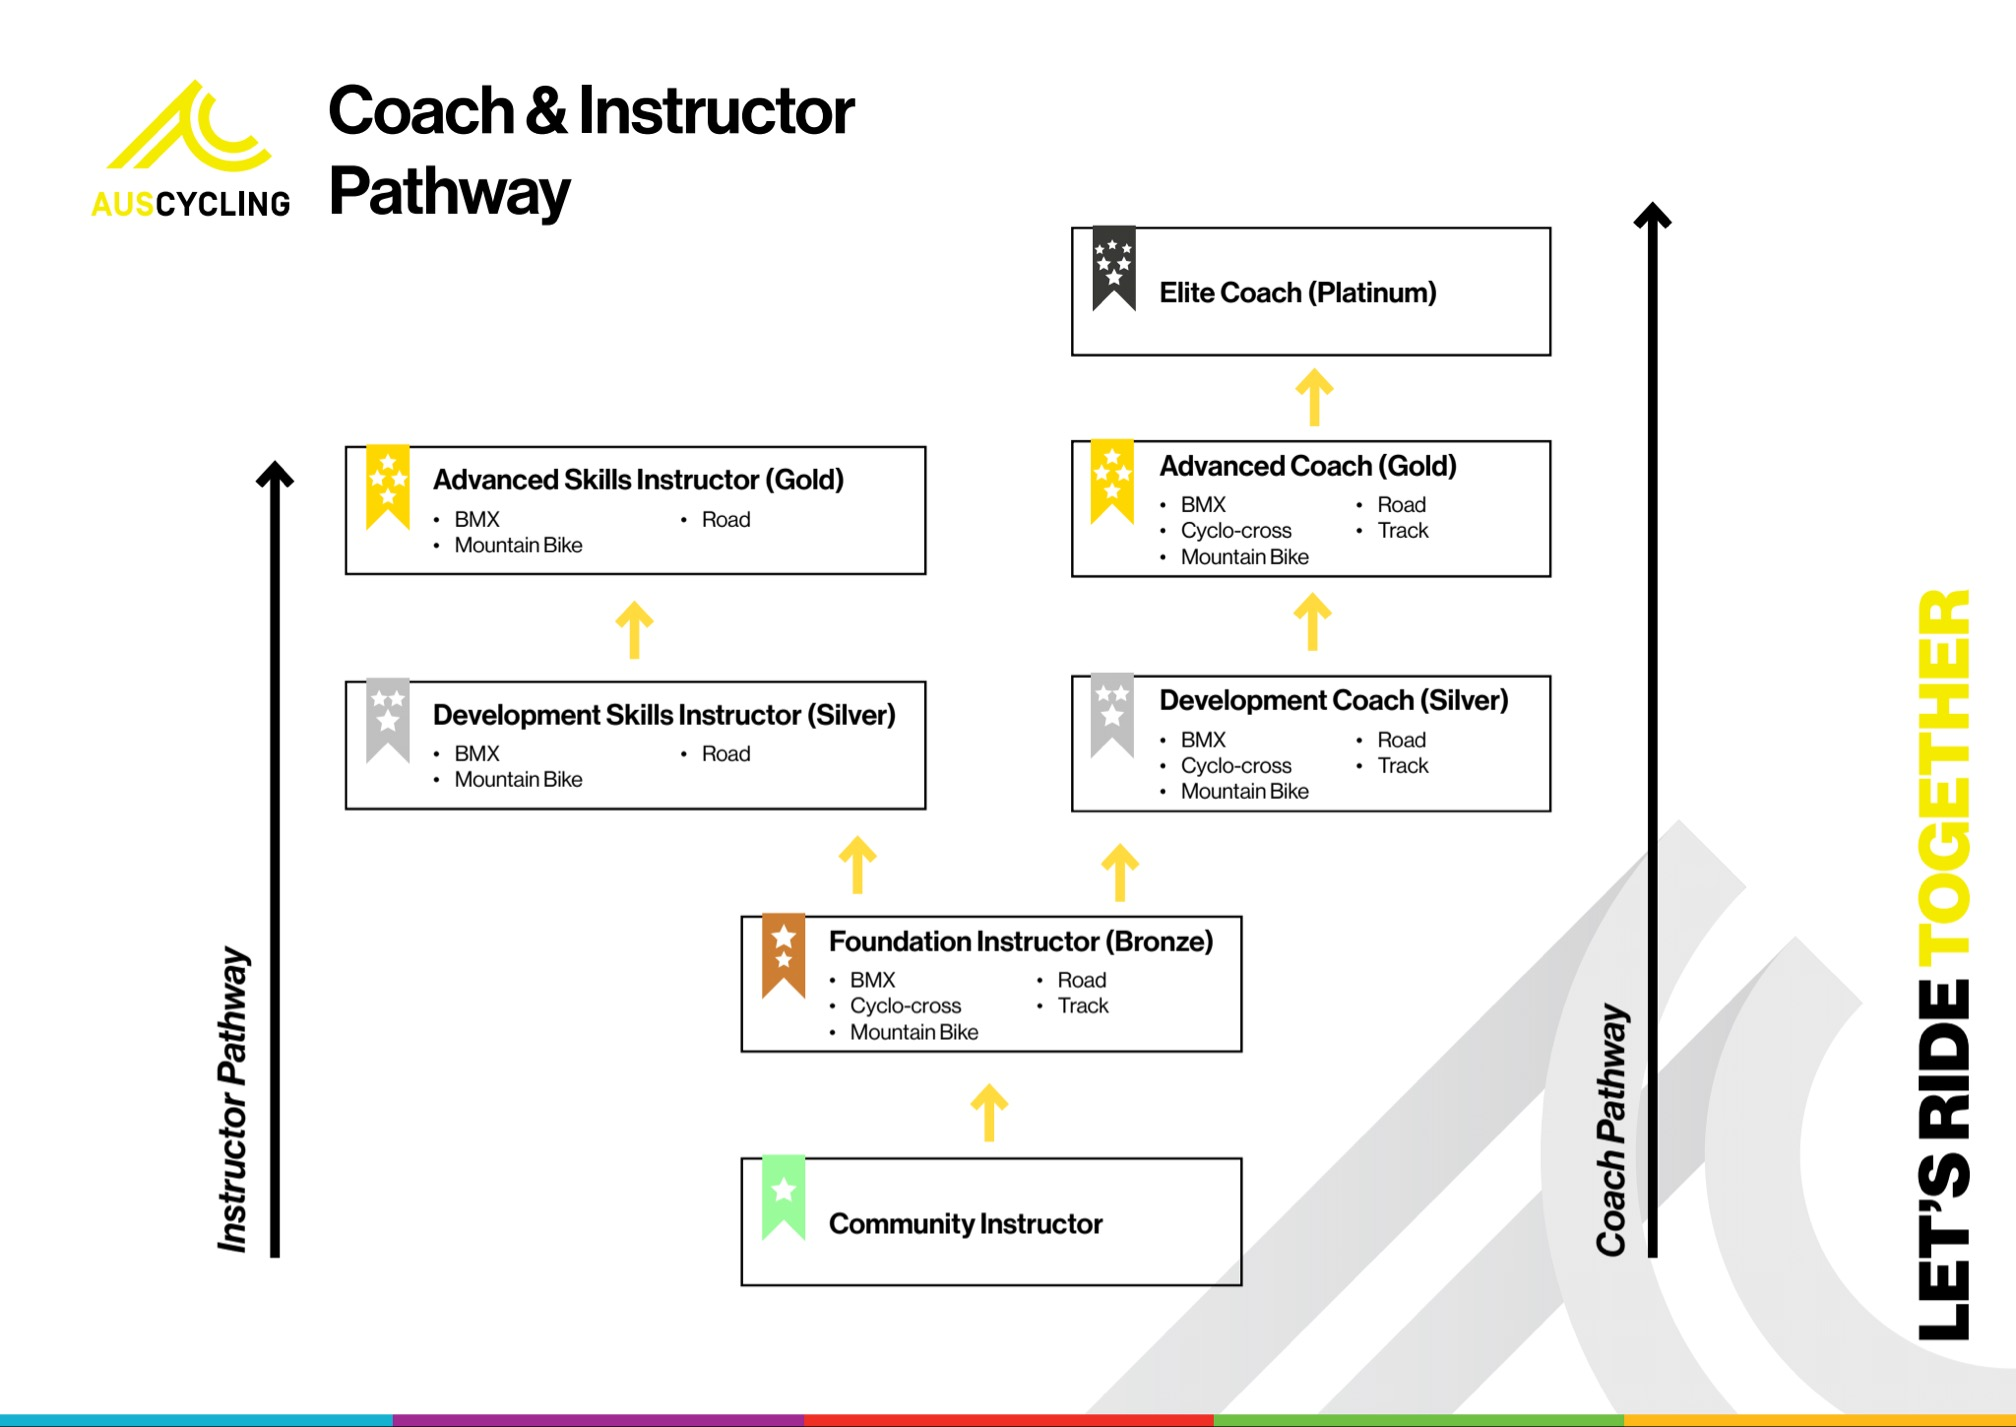 Coach and Instructor Pathway